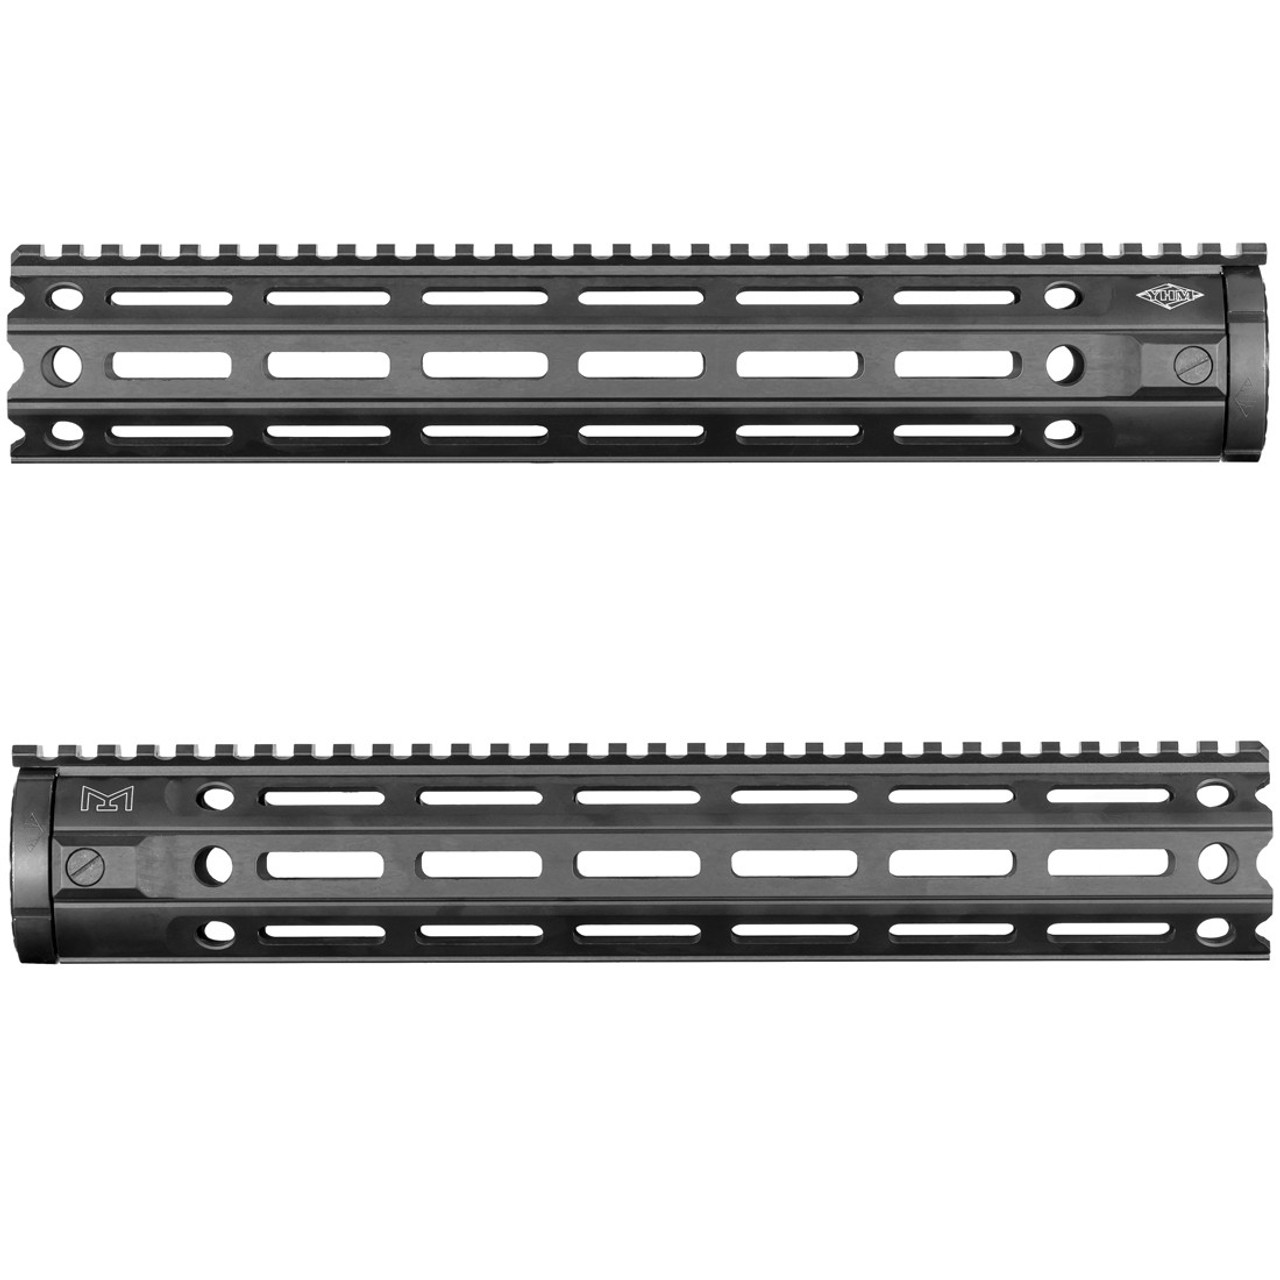 "Yankee Hill Machine MR7 MLok Handguard in 12.5"" Dolos compatible handguard"